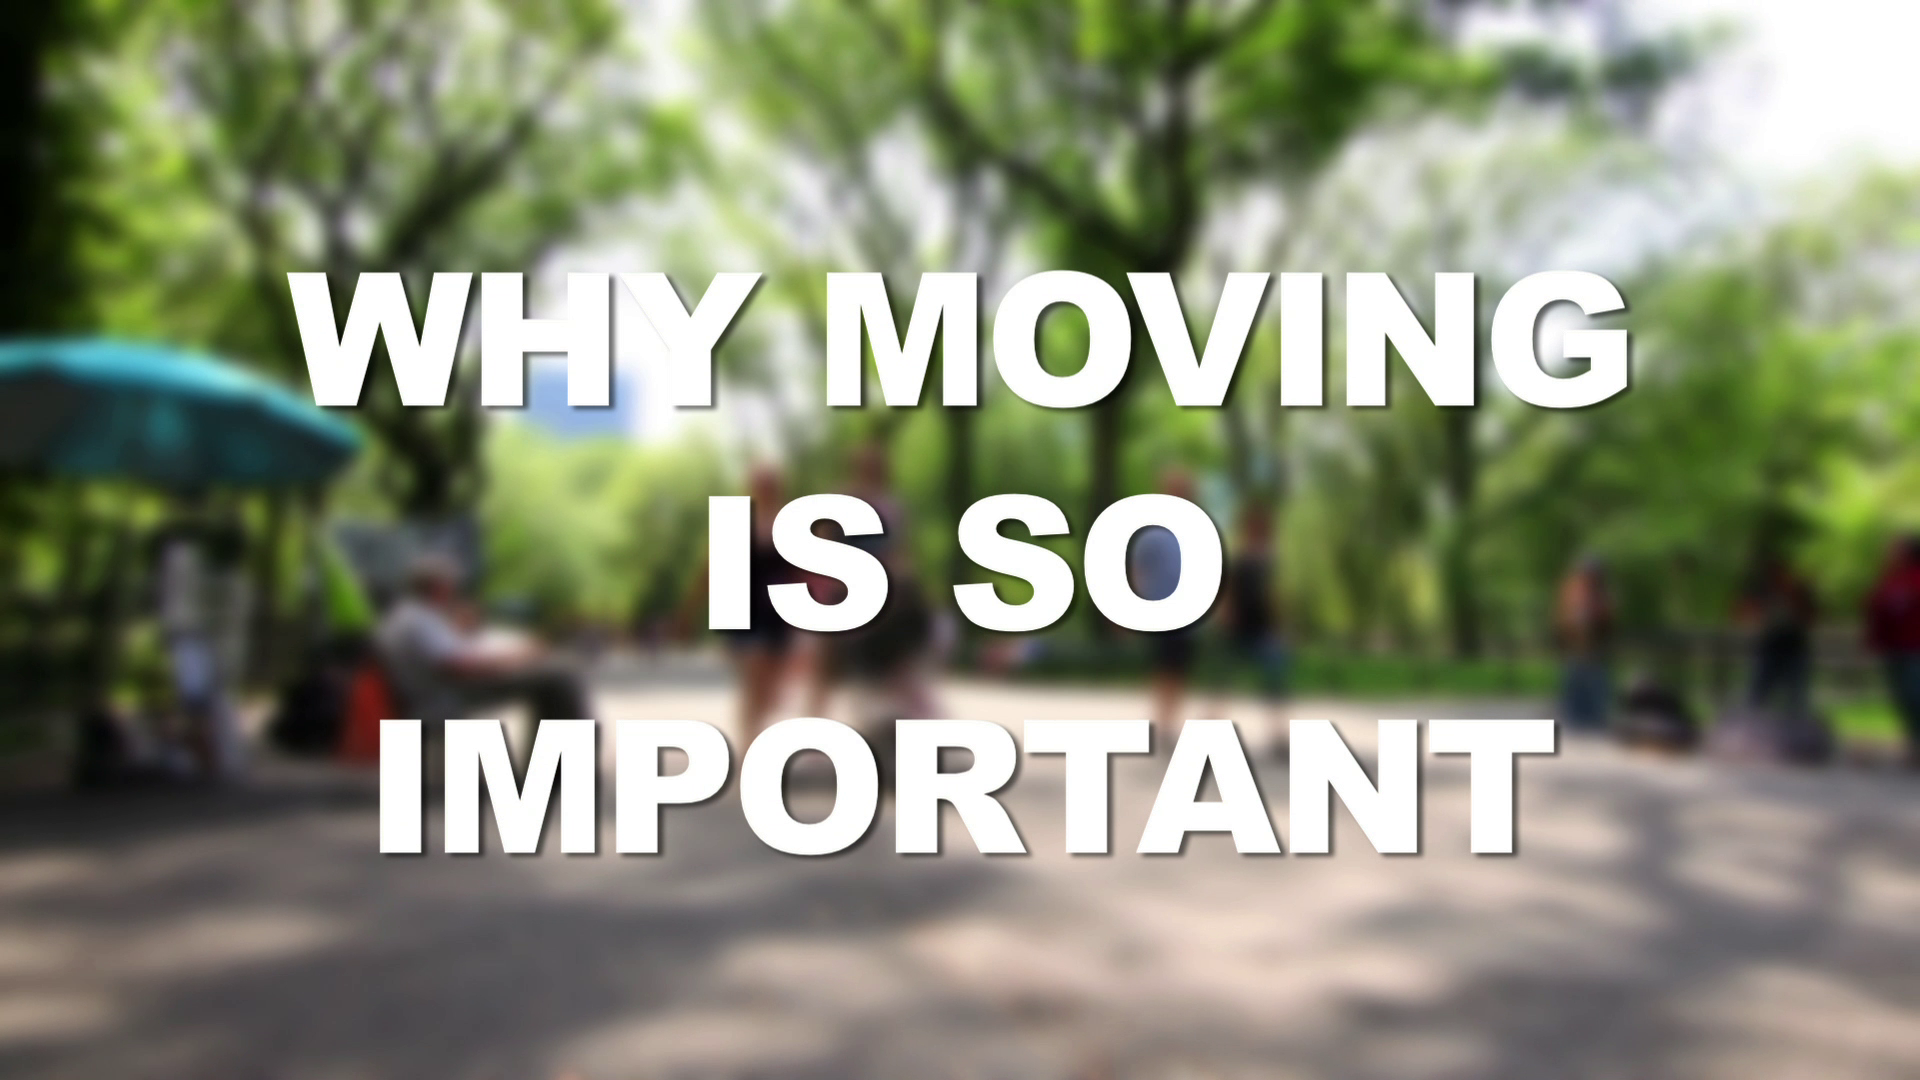 Dr. Mike Moreno on Why Moving is So Important